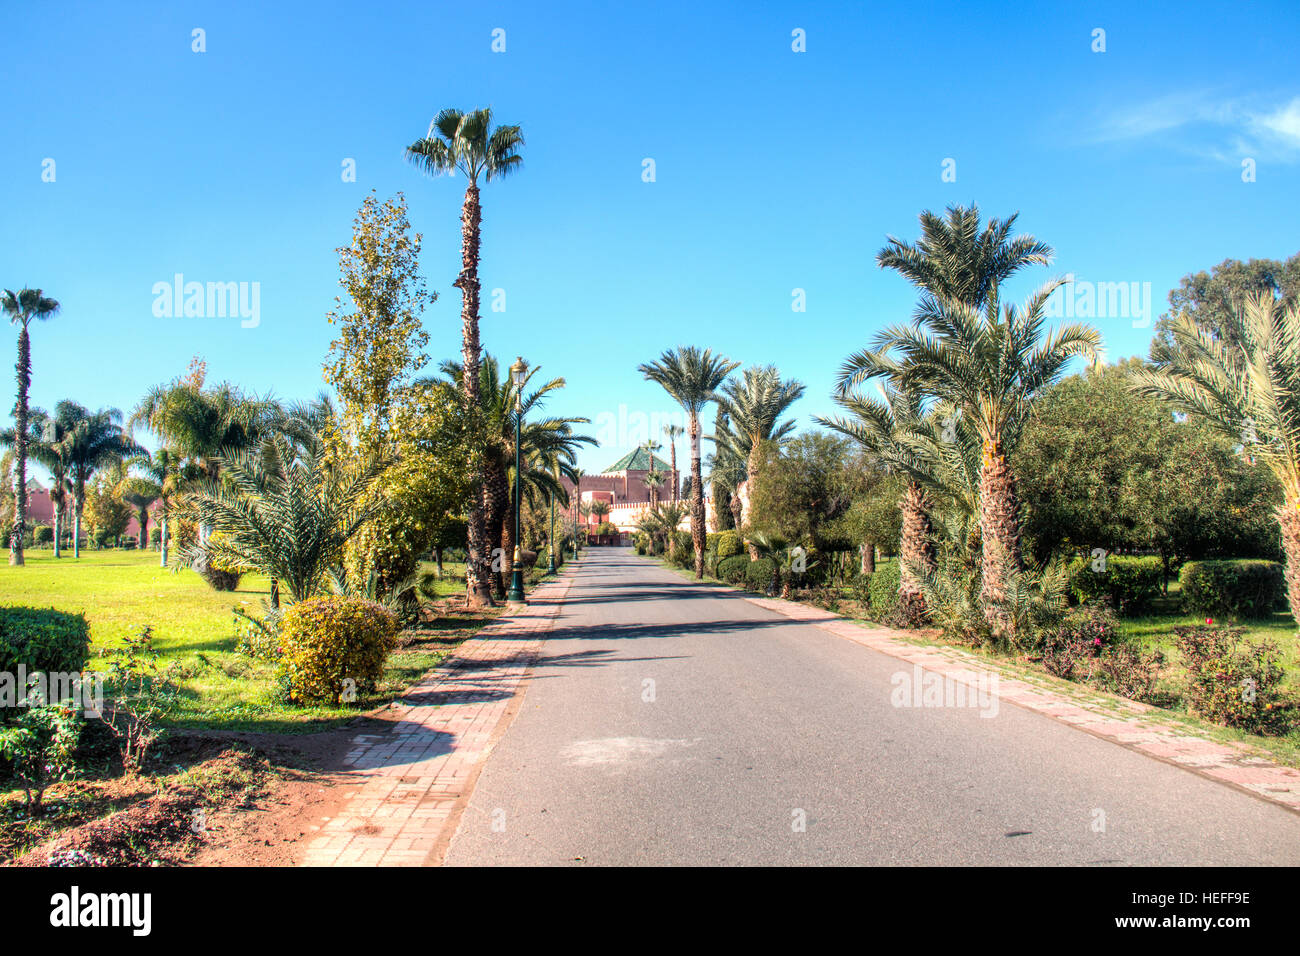 The beautiful gardens of the Royal palace of Marrakesh in Morocco - Stock Image